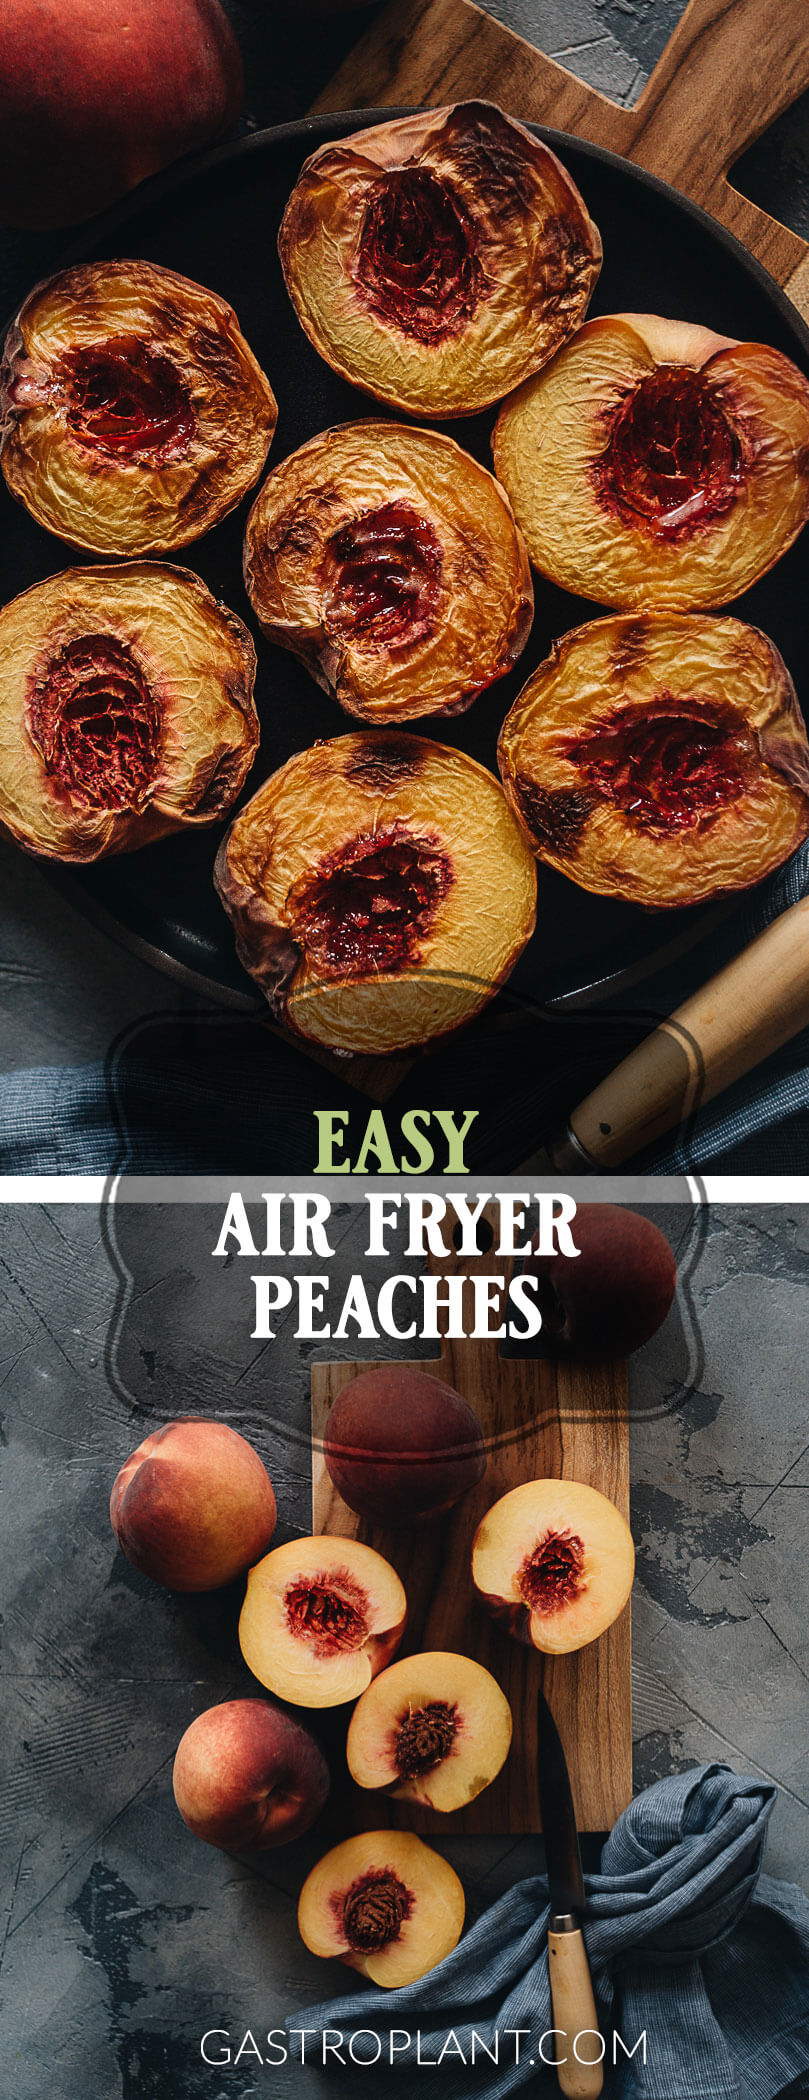 Easy Air Fryer Peaches Collage